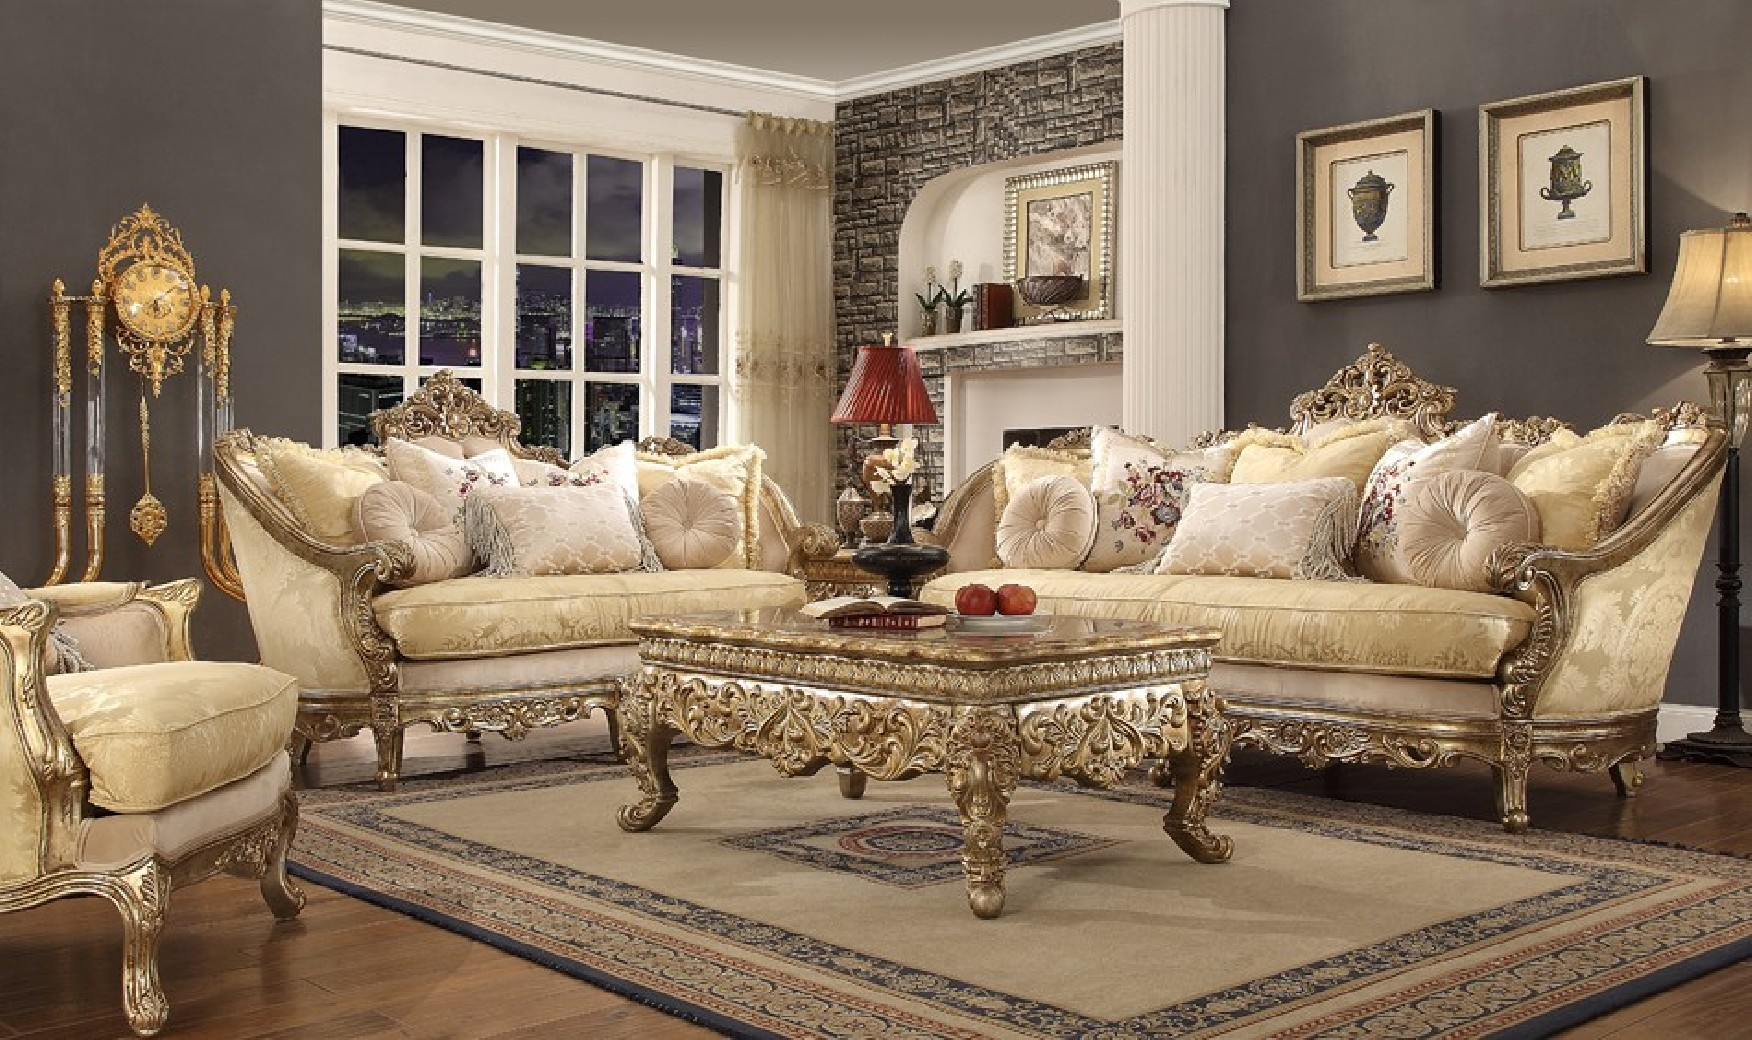 Hd 2626 Homey Design Upholstery Living Room Set Victorian European